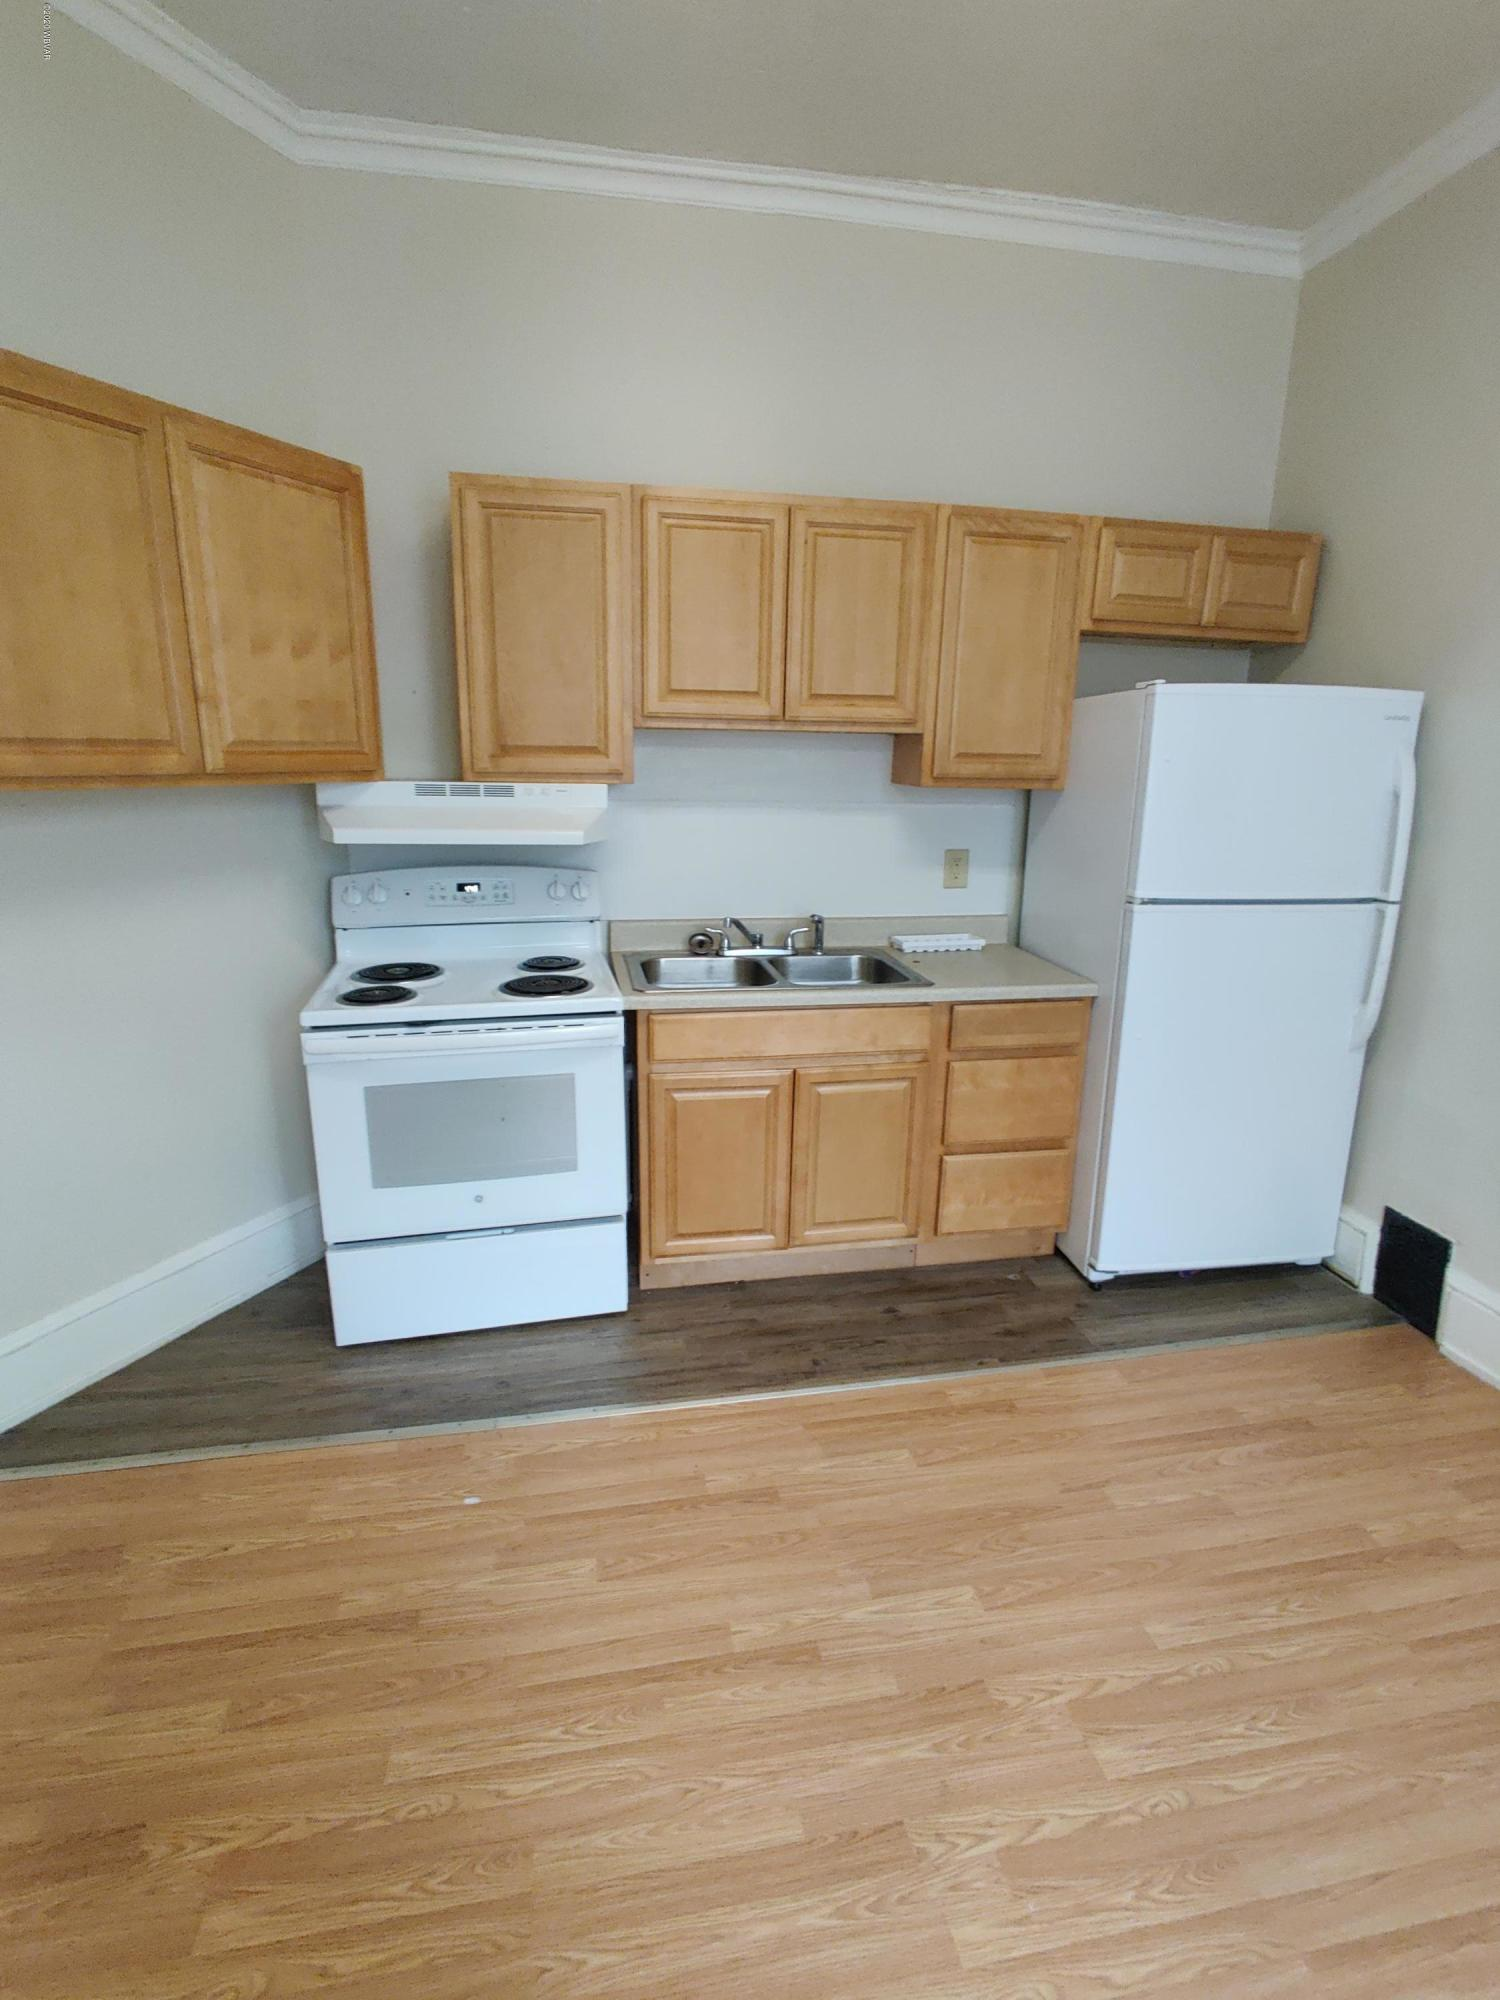 334 CAMPBELL STREET,Williamsport,PA 17701,1 Bedroom Bedrooms,1 BathroomBathrooms,Resid-lease/rental,CAMPBELL,WB-90128